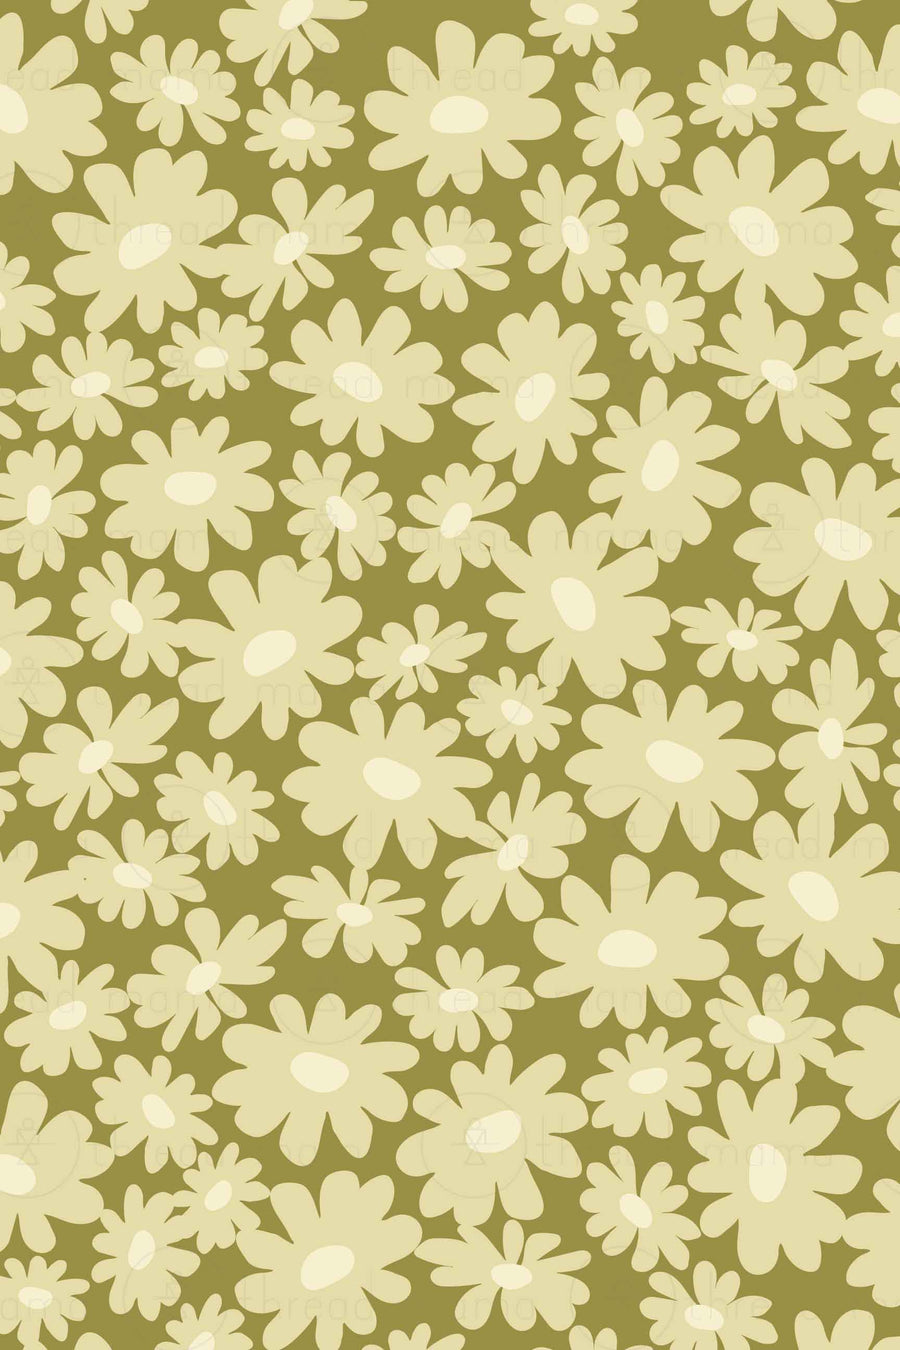 Repeating Pattern 51 Collection (Seamless)